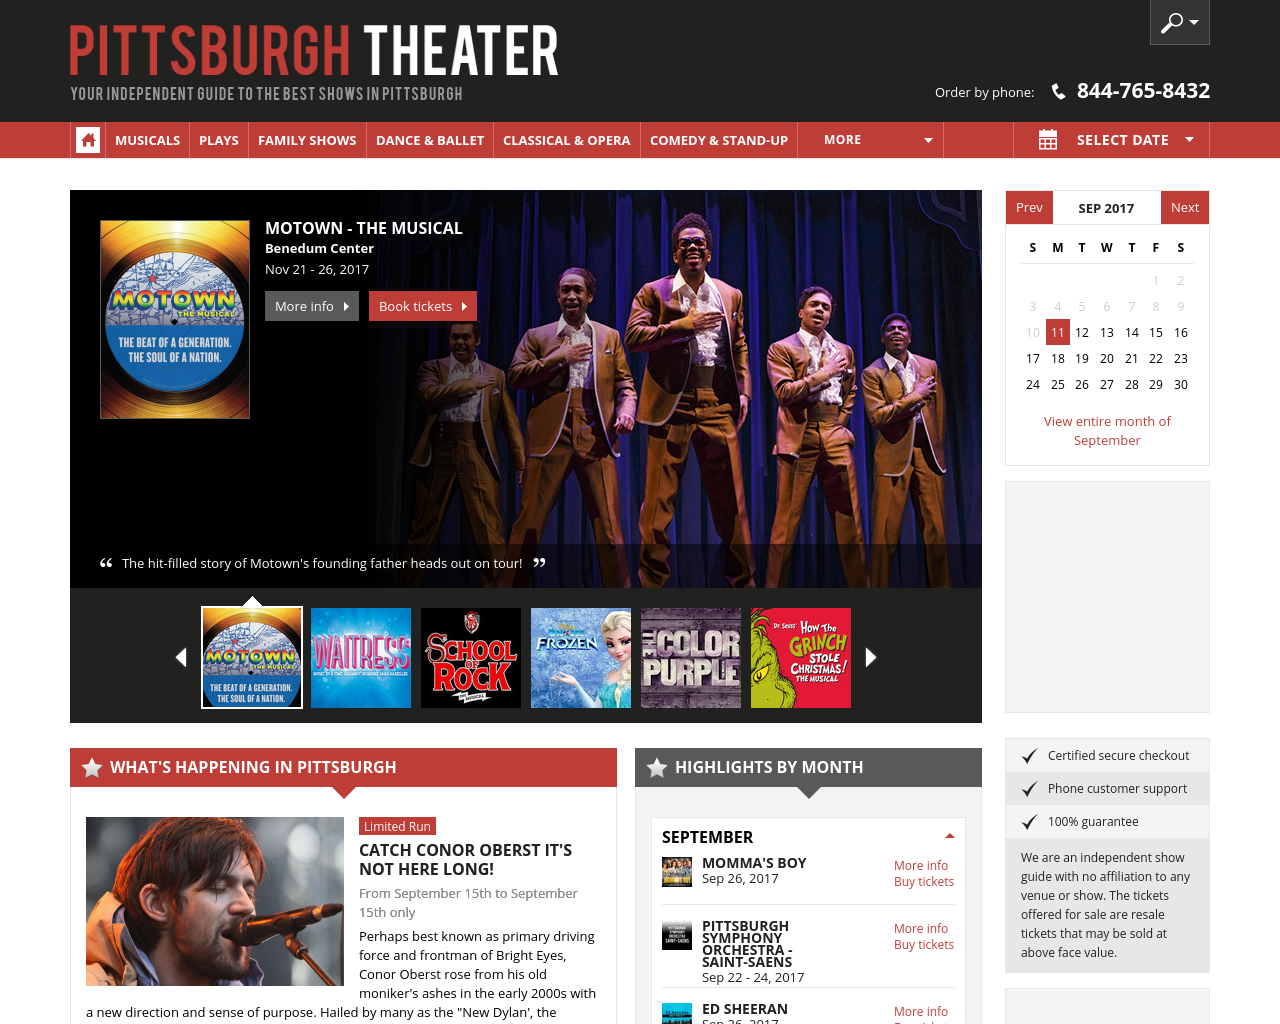 PITTSBURGH-THEATER-Advertising-Reviews-Pricing